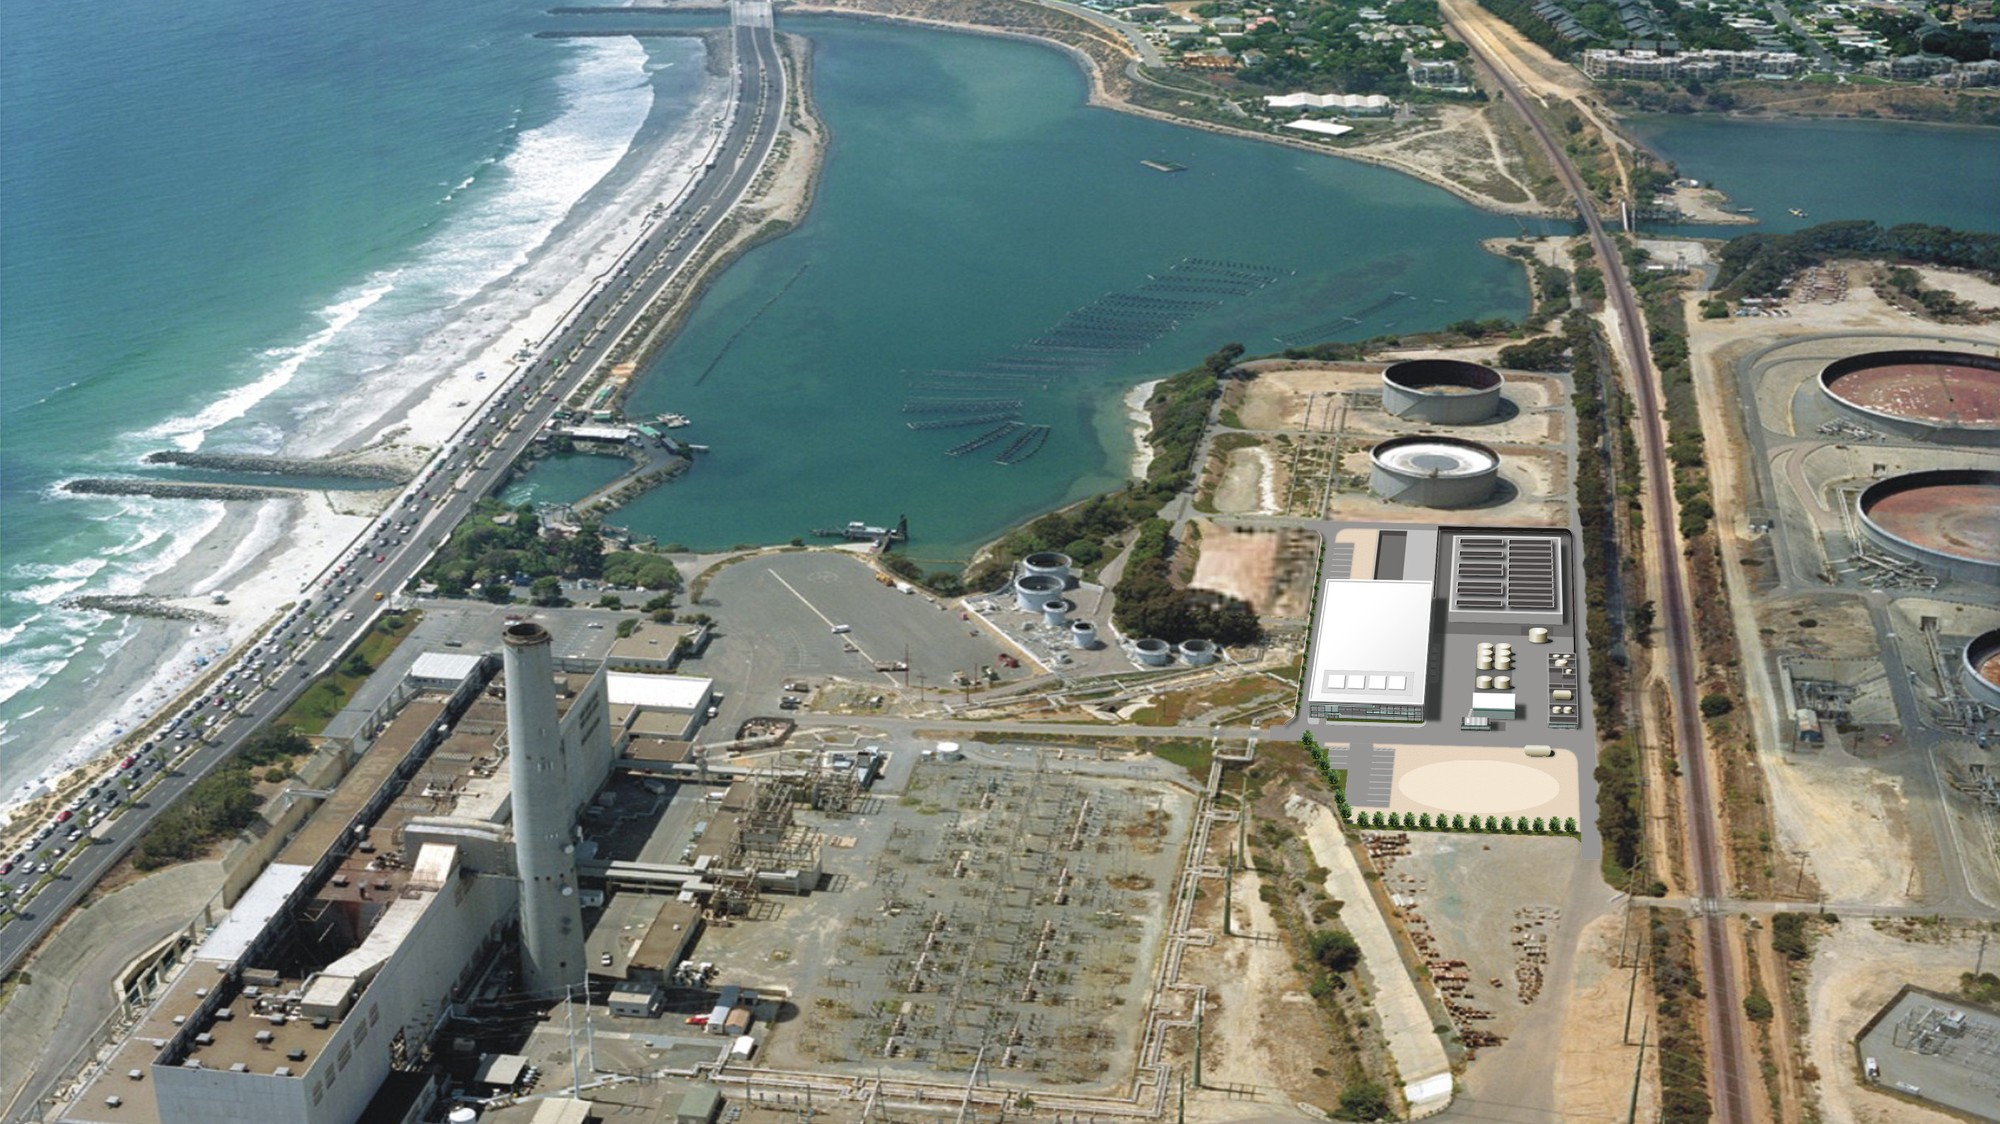 Improved Desalination Technology is Quenching the World's